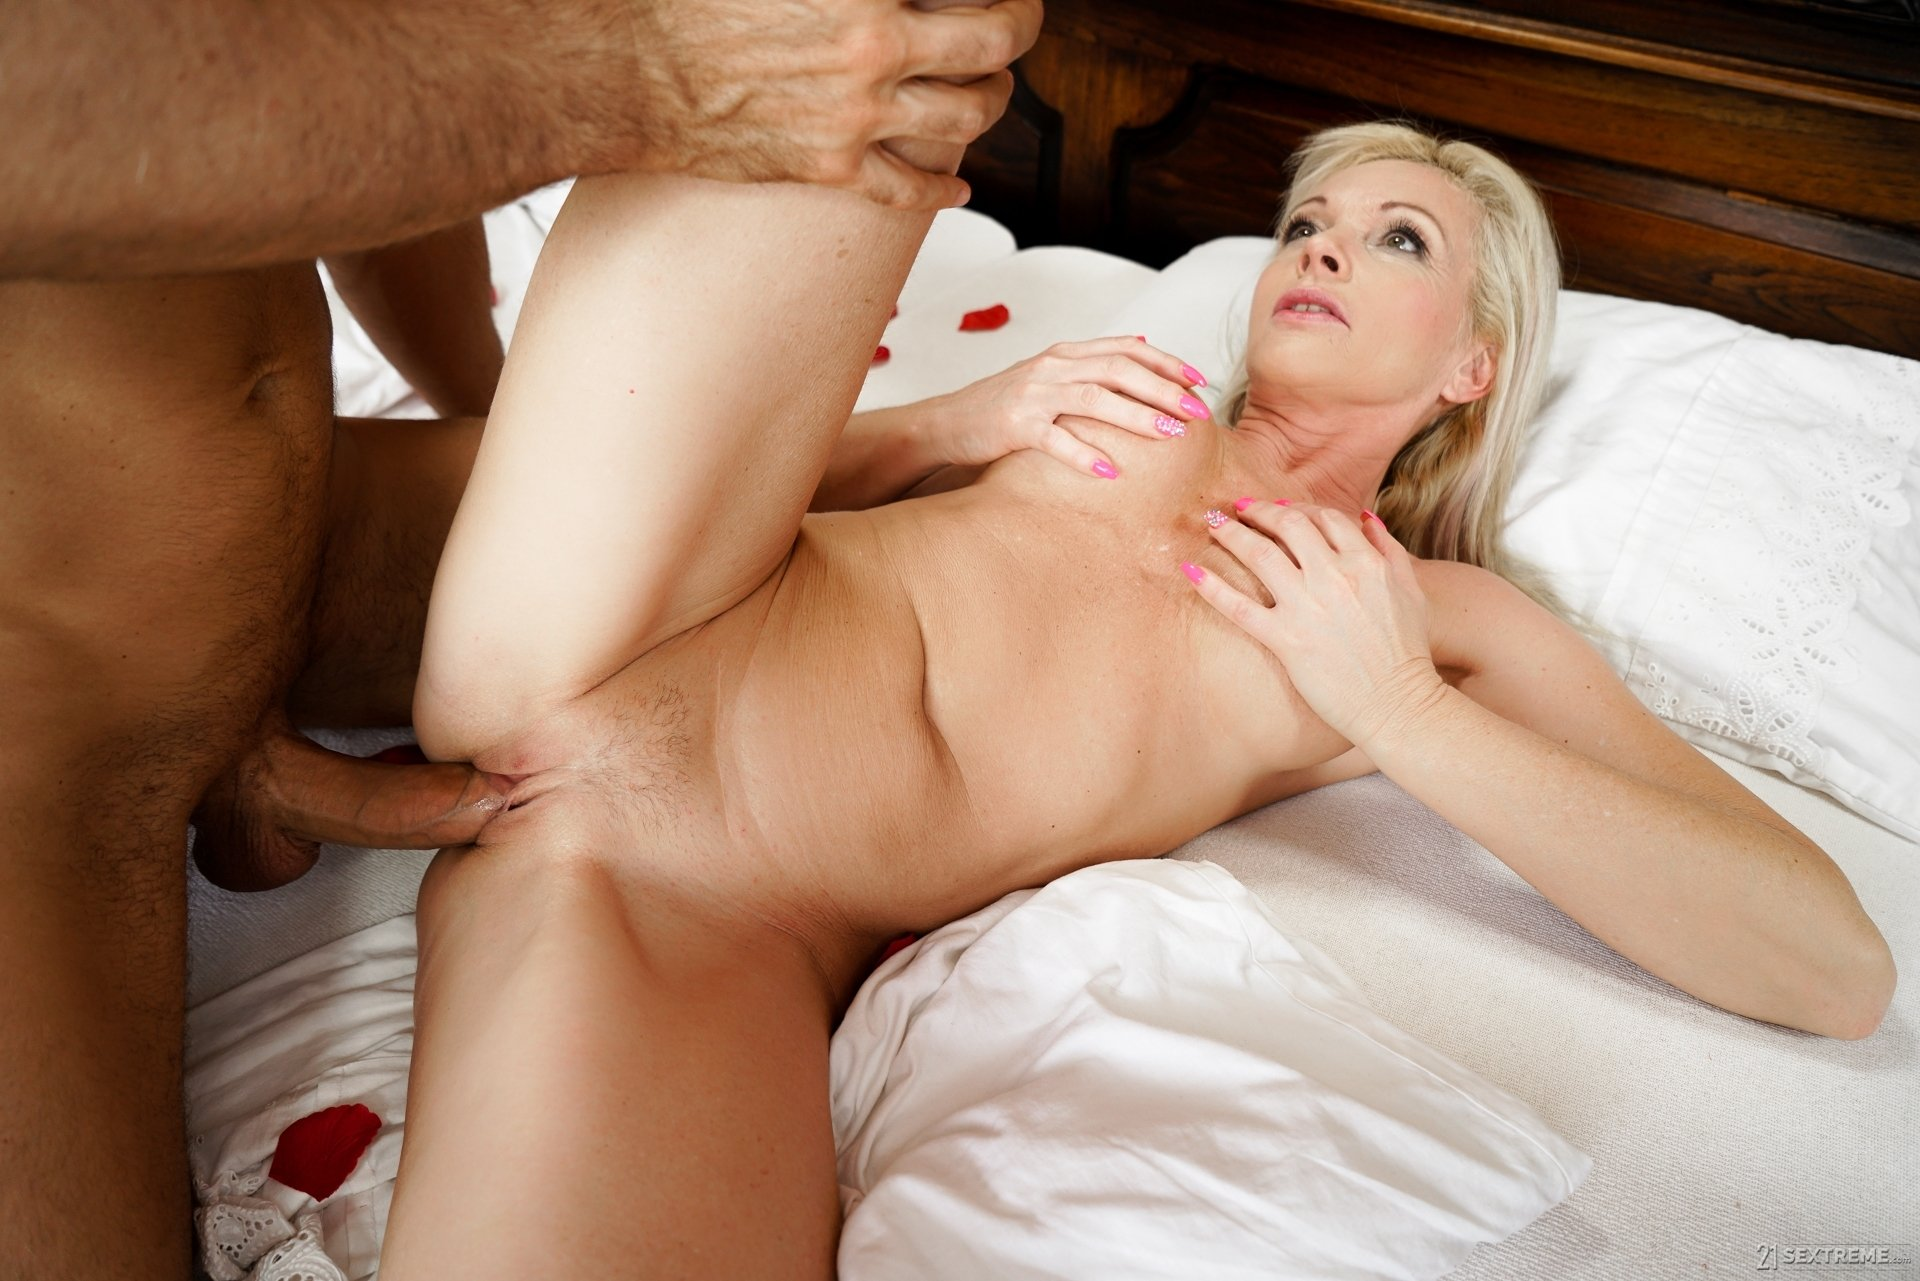 house wife cheating videos authoritative answer